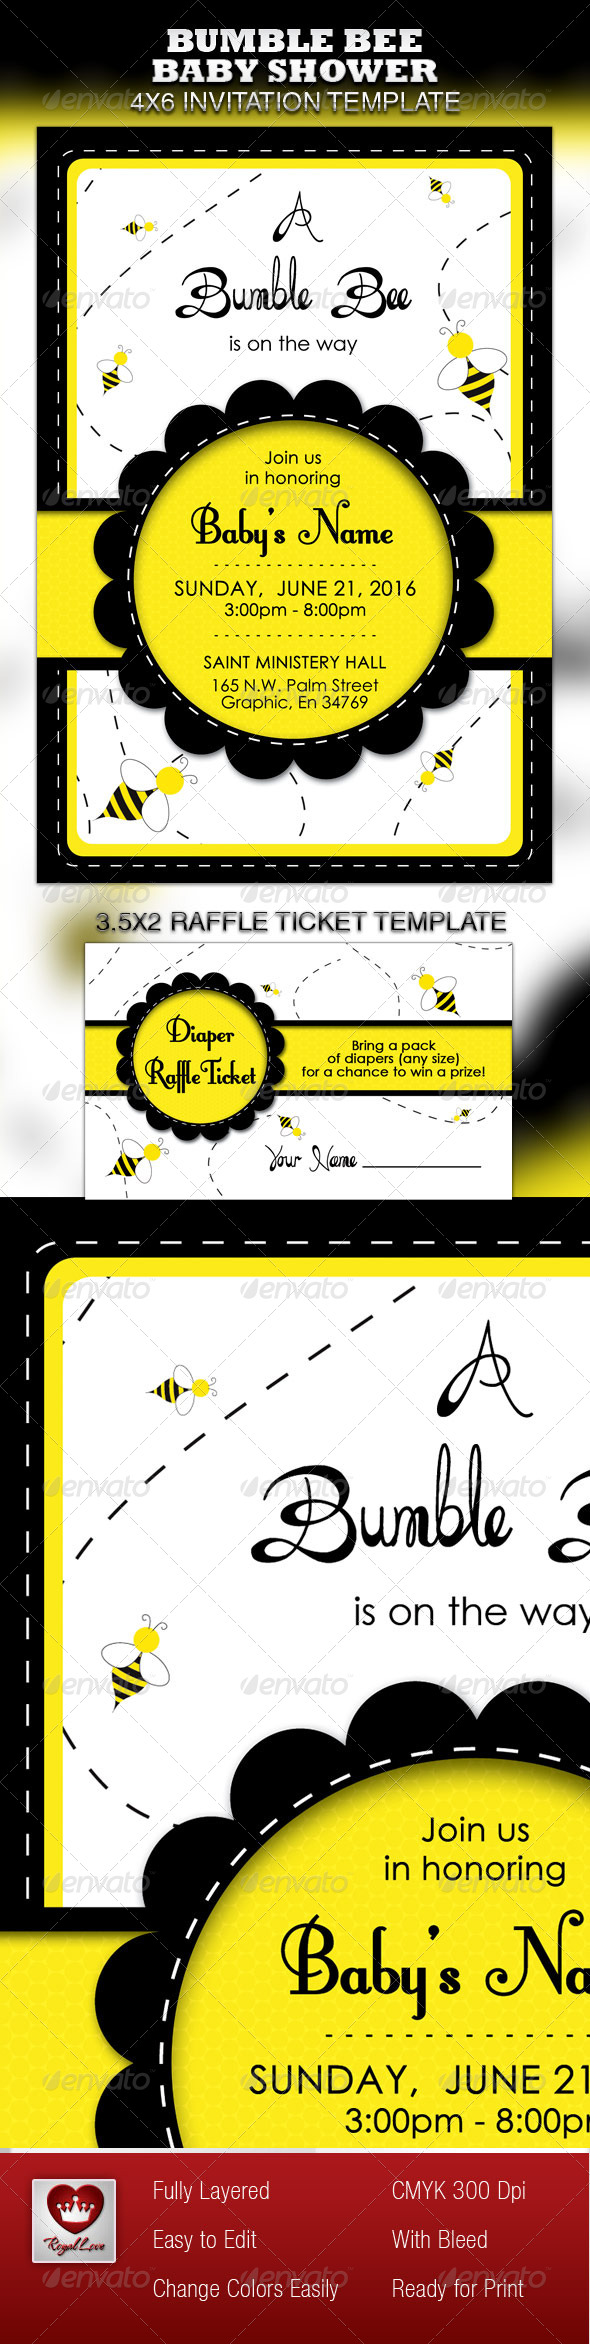 Bumble Bee Baby Shower Invitation & Raffle Ticket - Invitations Cards & Invites